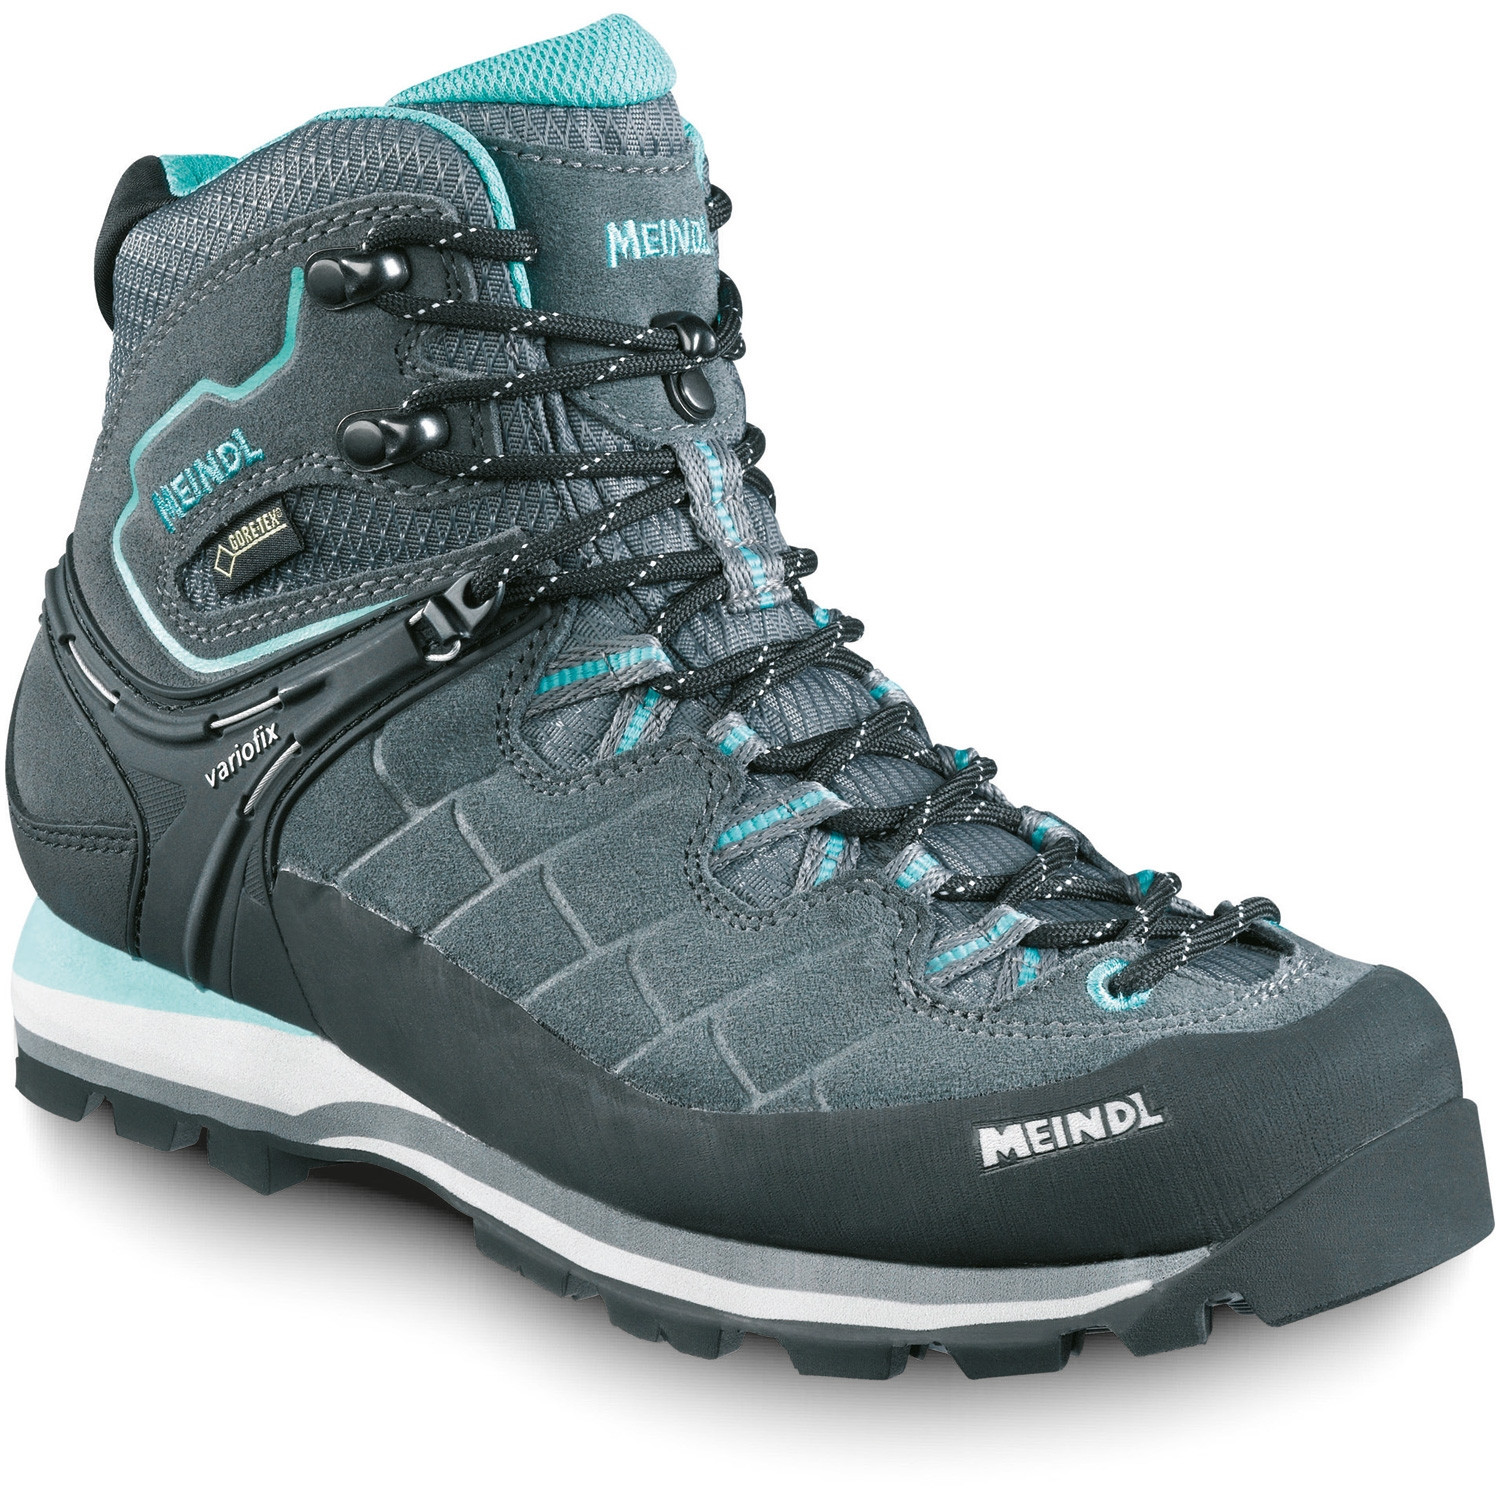 Buty Litepeak Lady GTX anthracitre/turquoise,anthracite/turquoise